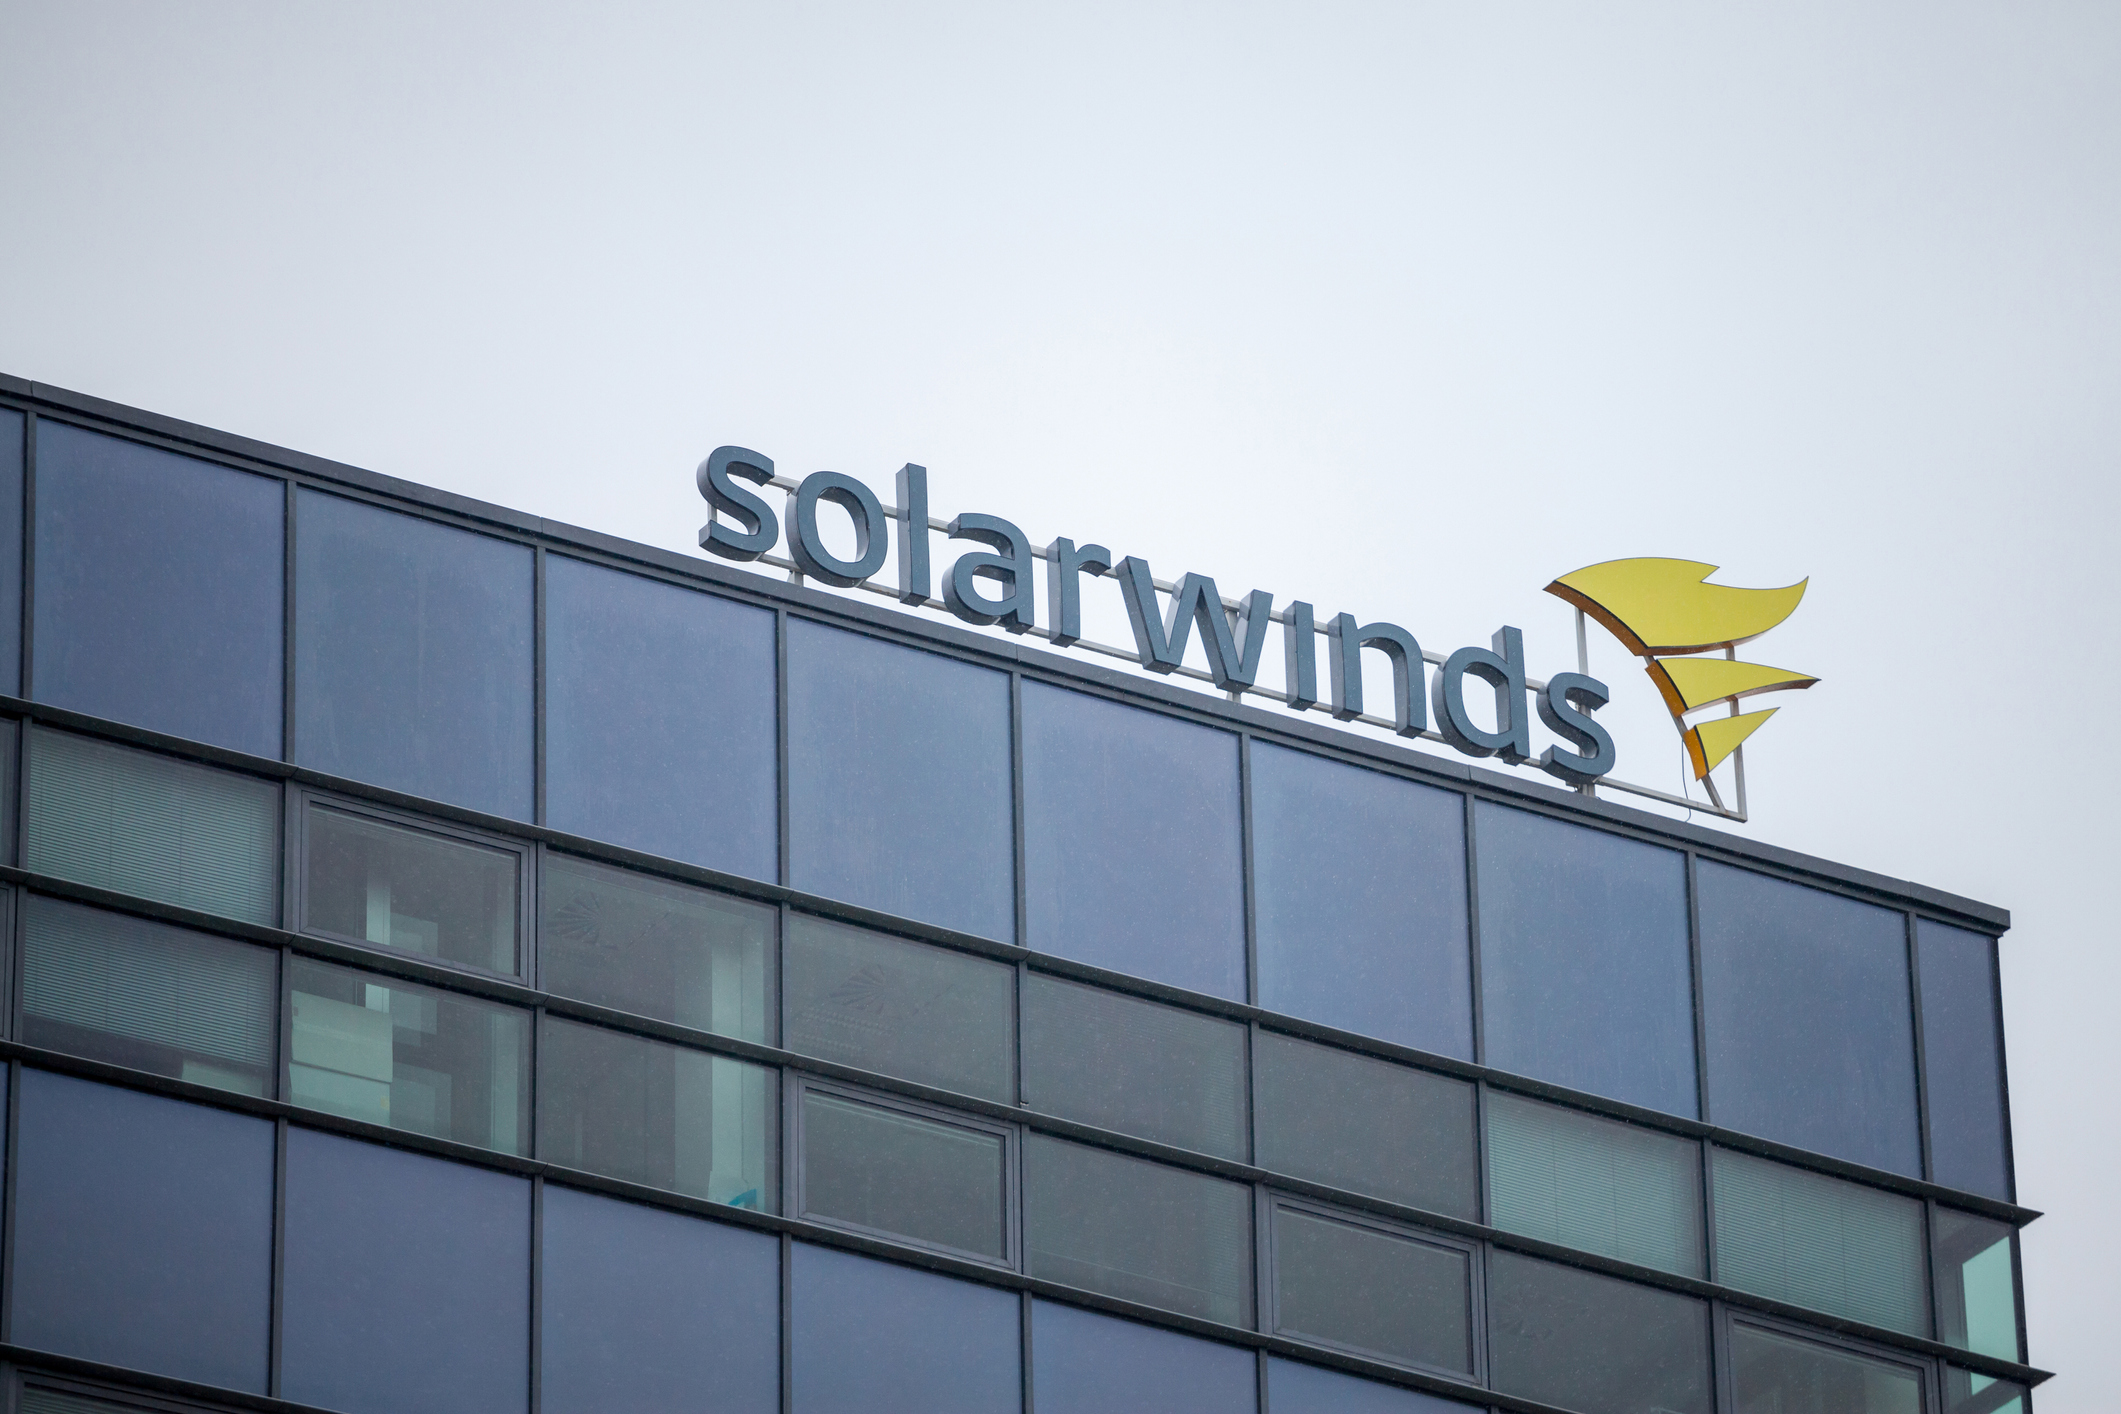 Solarwinds Office